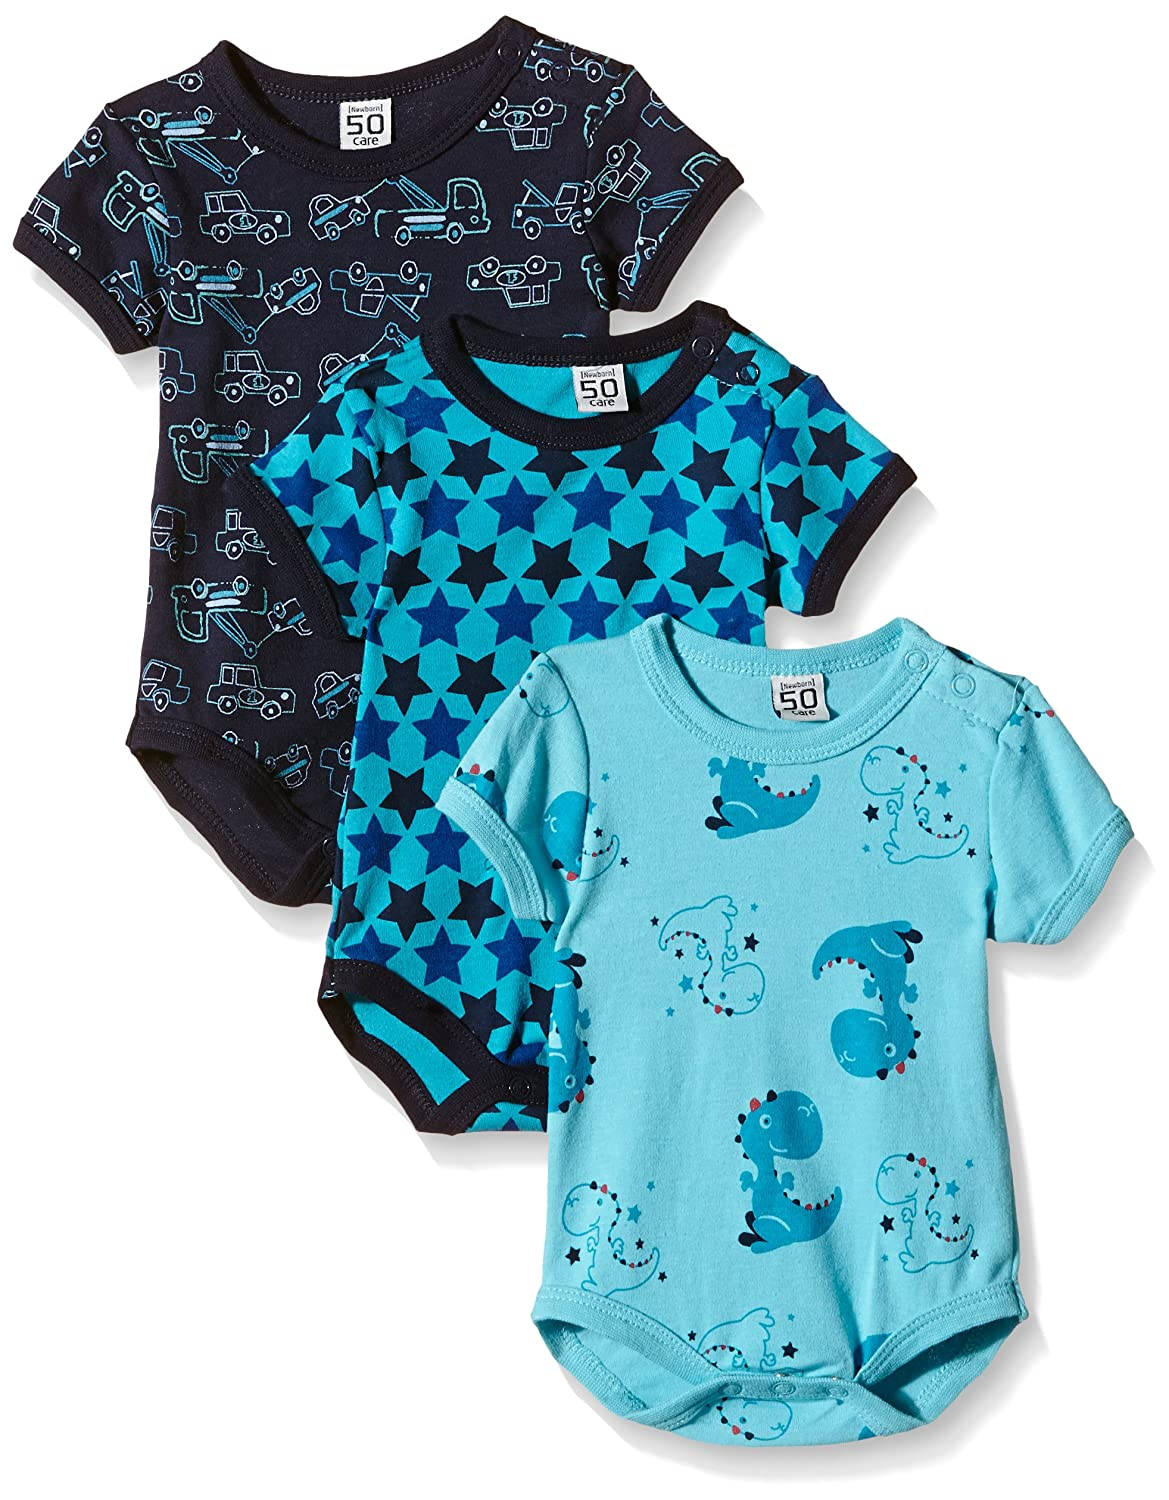 Care Baby Boys Bodysuit, Shortsleeve, 3-Pack 4133